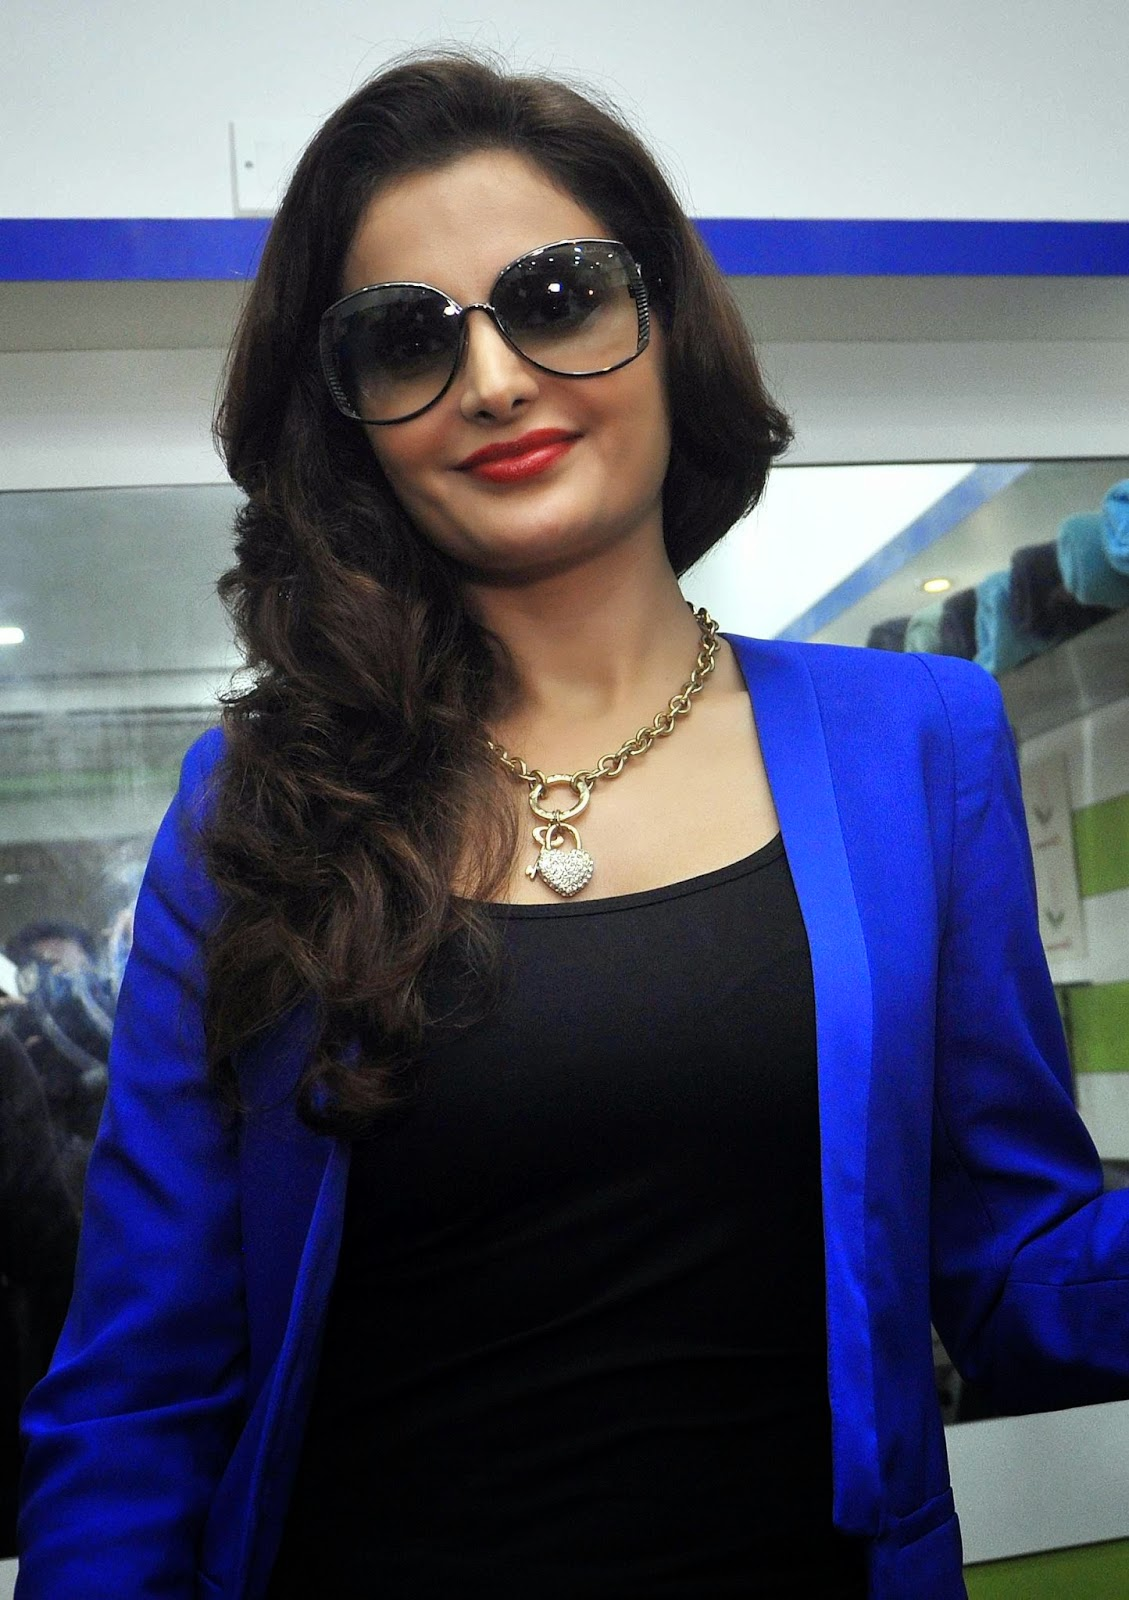 High Quality Bollywood Celebrity Pictures Monica Bedi -7415